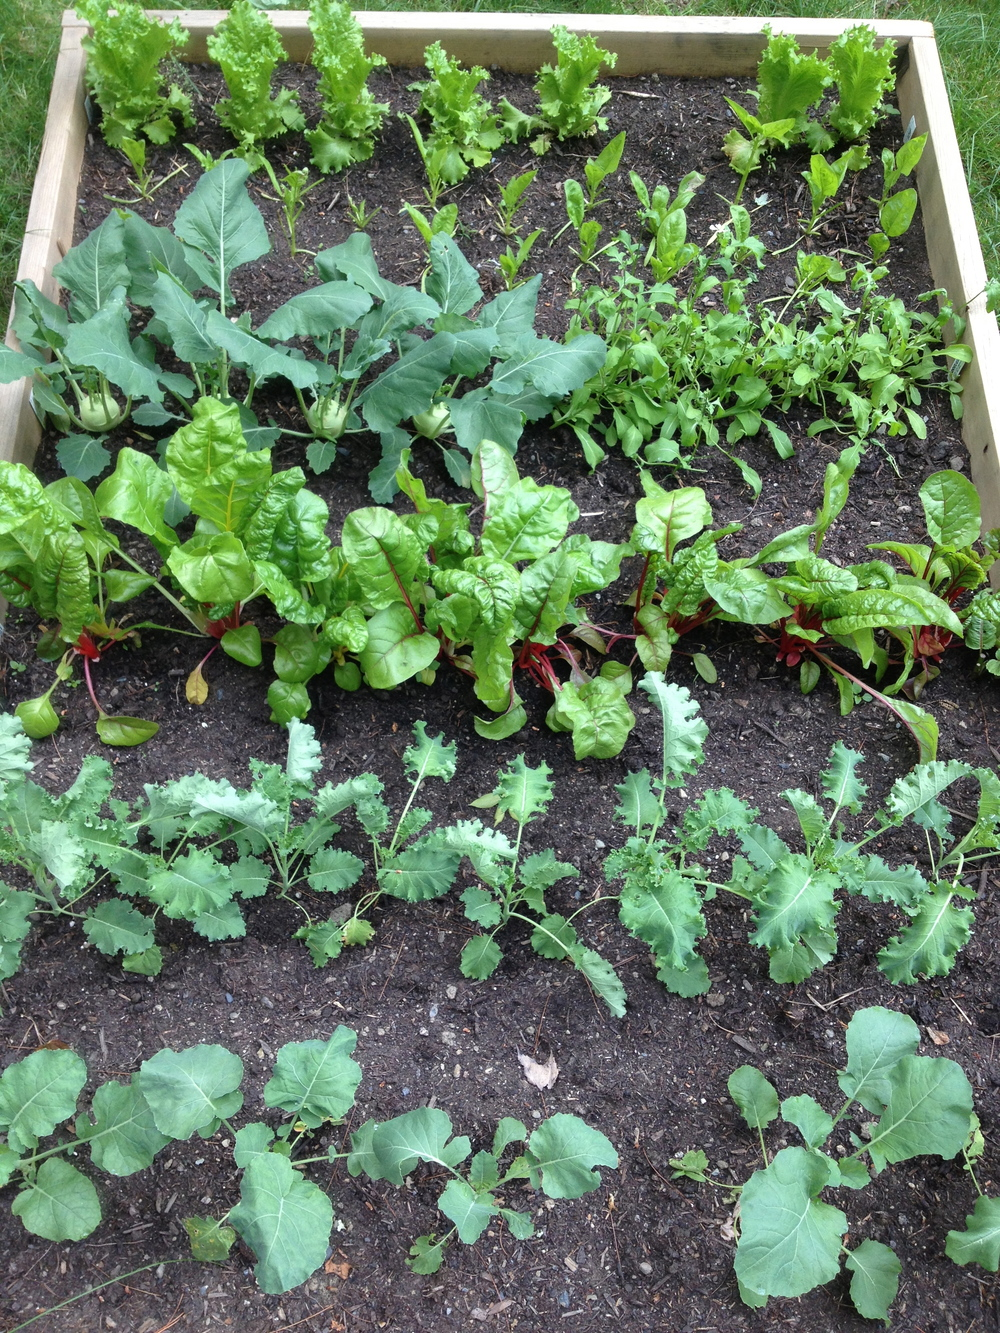 Broccoli (from seed), kale, swiss chard, kohlrabi, arugula, spinach (from seed) and lettuce. (Front to back.)